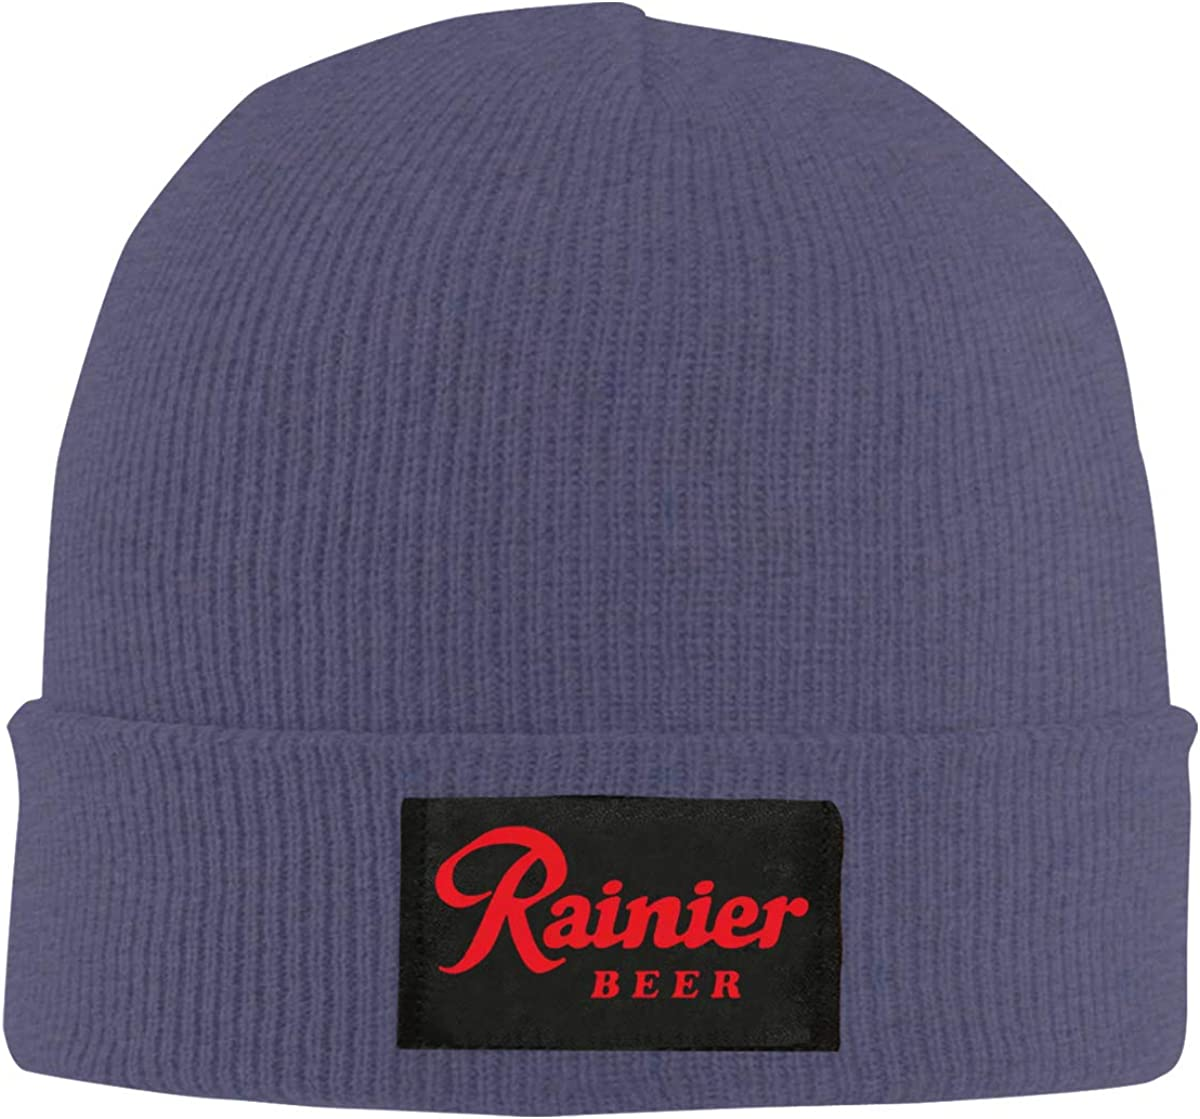 Knitted Hat Rainier Beer Comfortable Caps for Unisex Black Cap